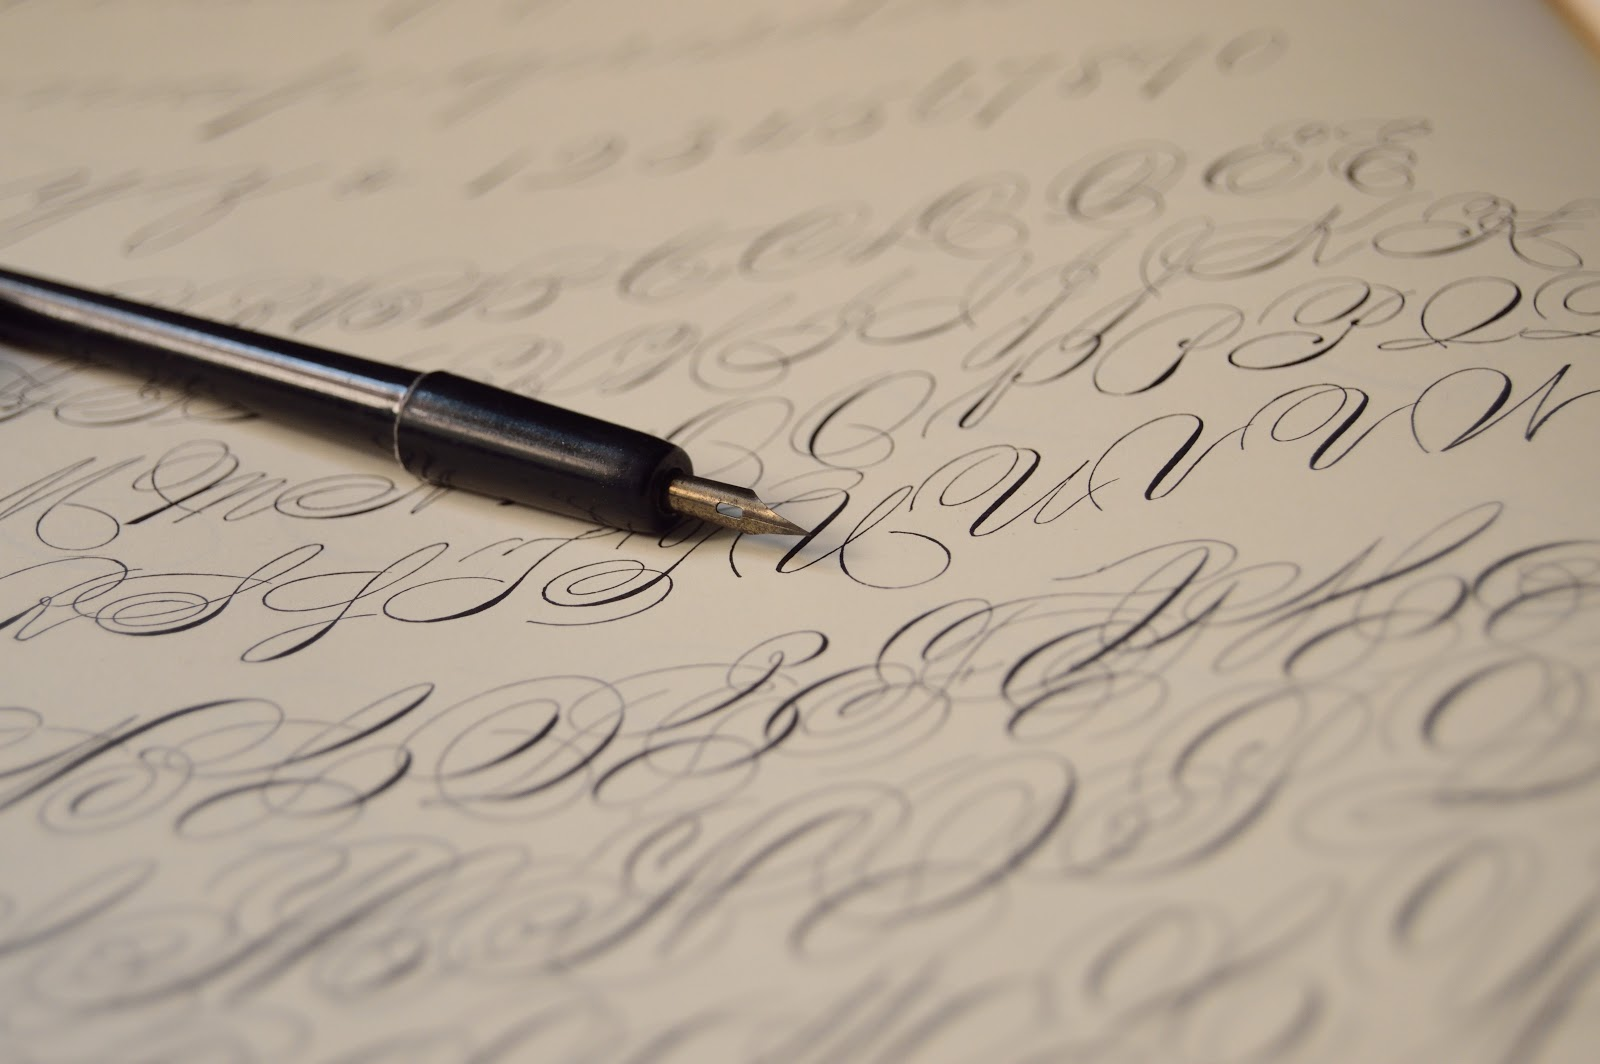 Image of calligraphy pen and writing.